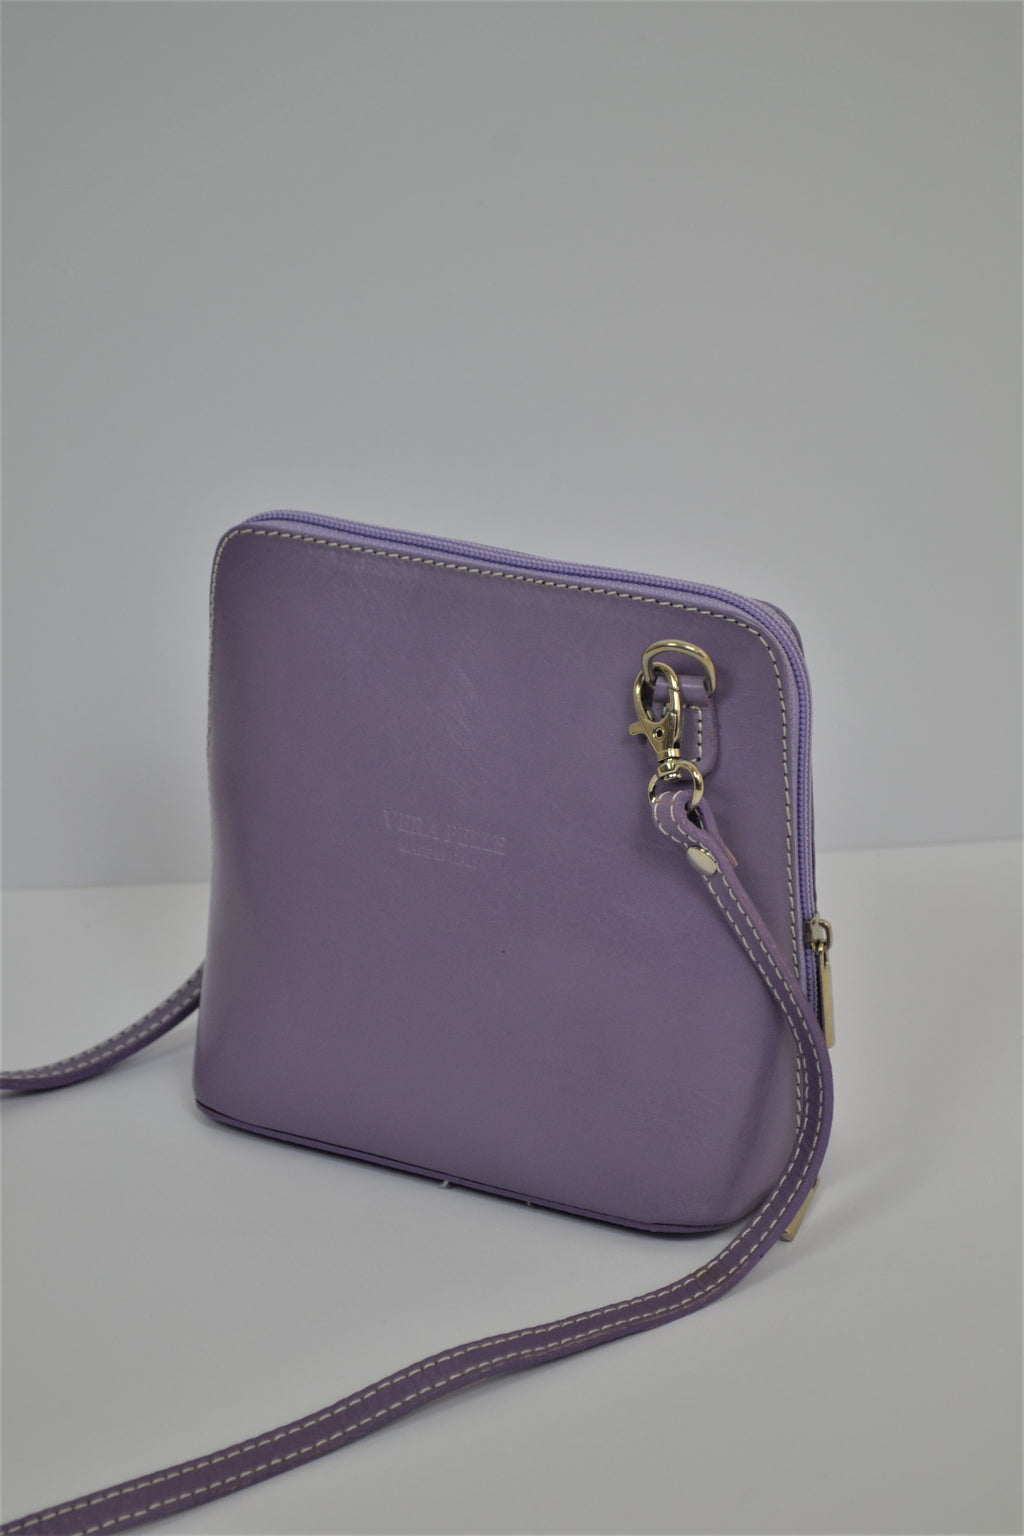 Husen Moda Purple Leather Bag